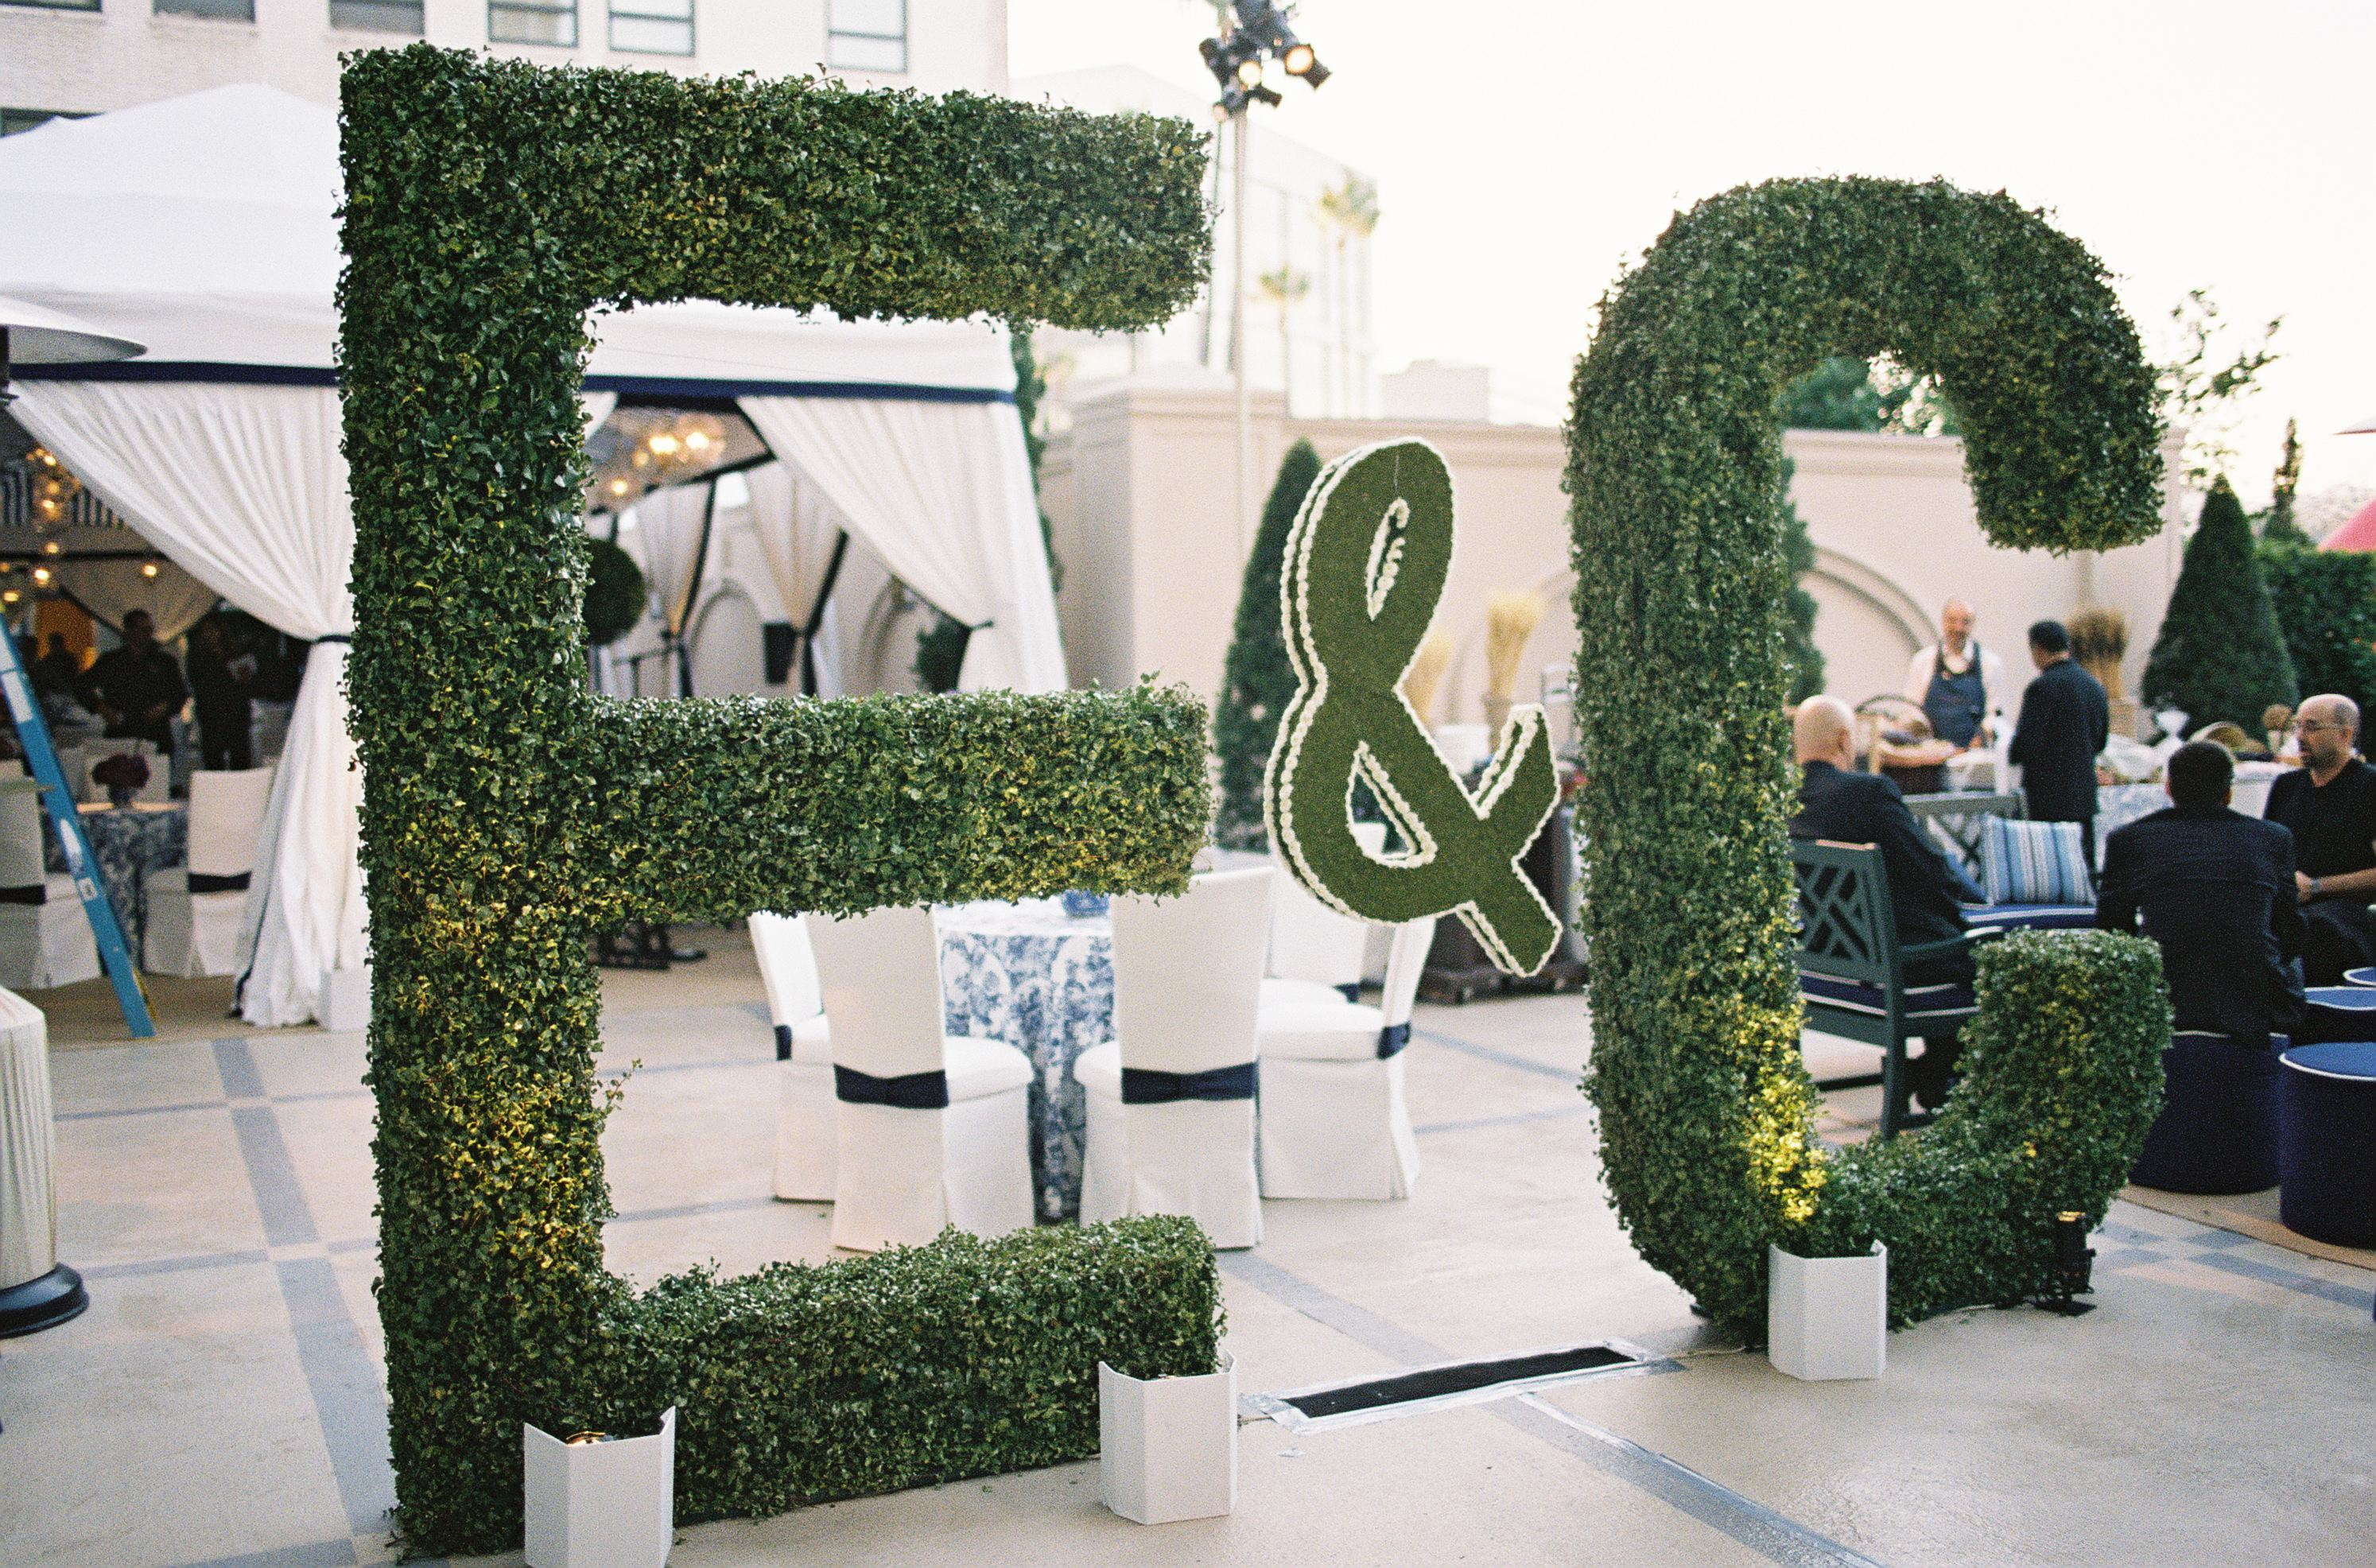 wedding initials party weiss mindy topiary greenery event hedges consultants jose villa decorations hedge weddings letters decor initial revelry designers